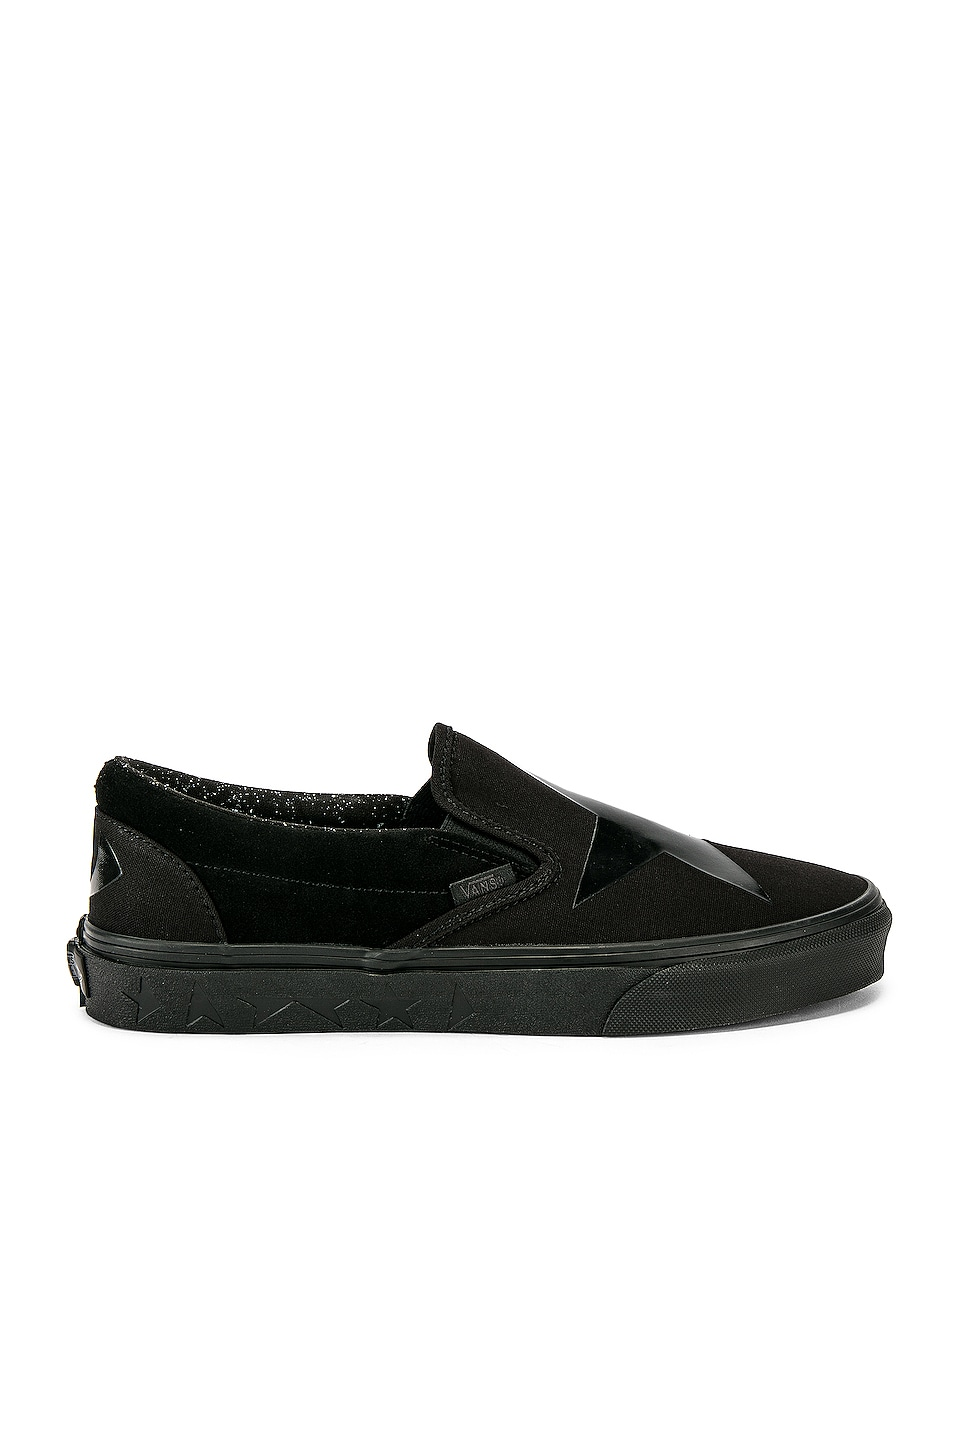 Vans x Bowie Classic Slip-On in Blackstar & Star